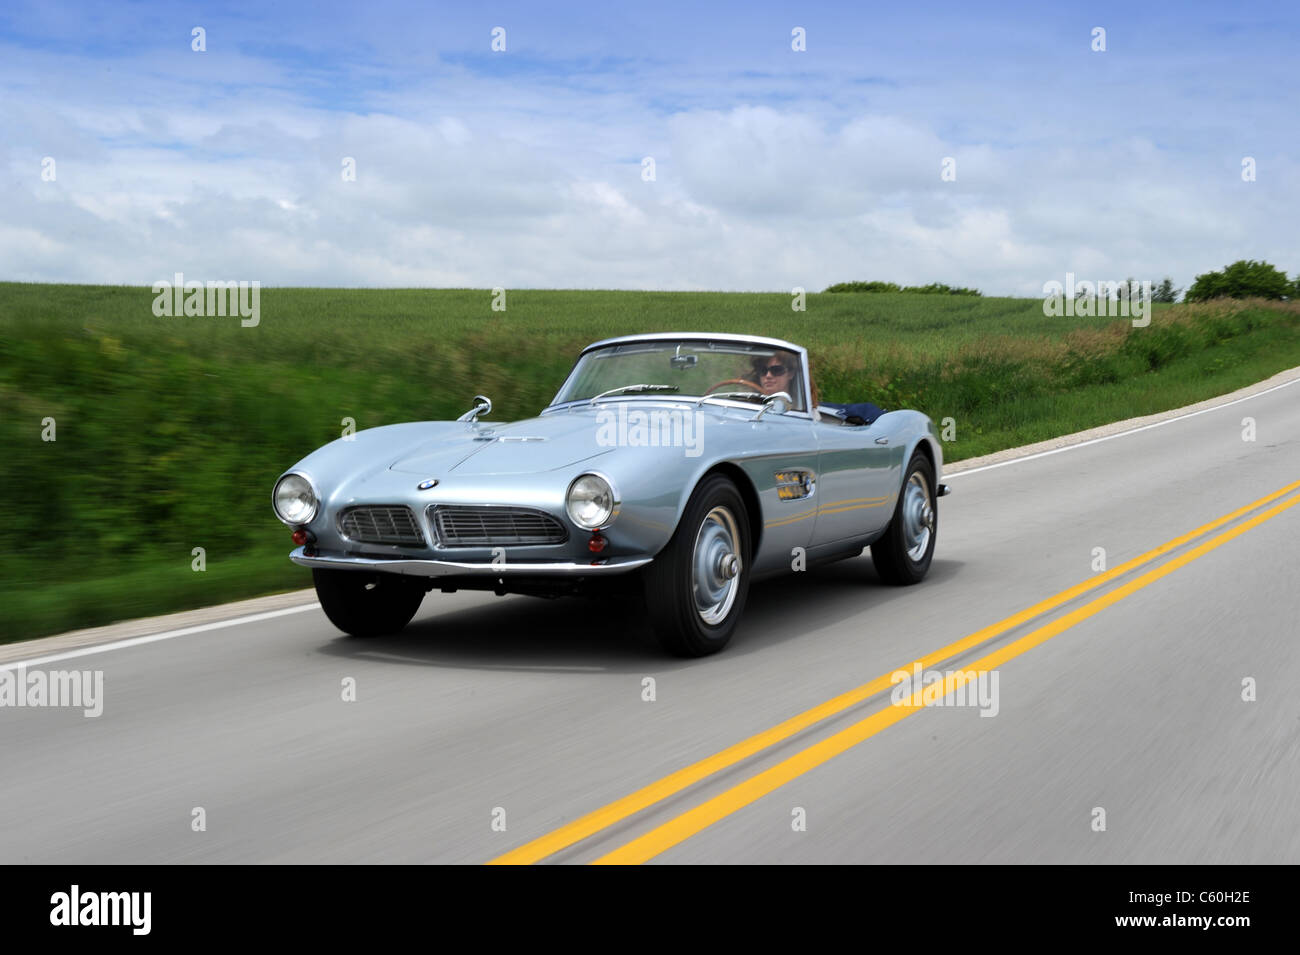 1957 BMW 507 cabriolet driving down the highway - Stock Image